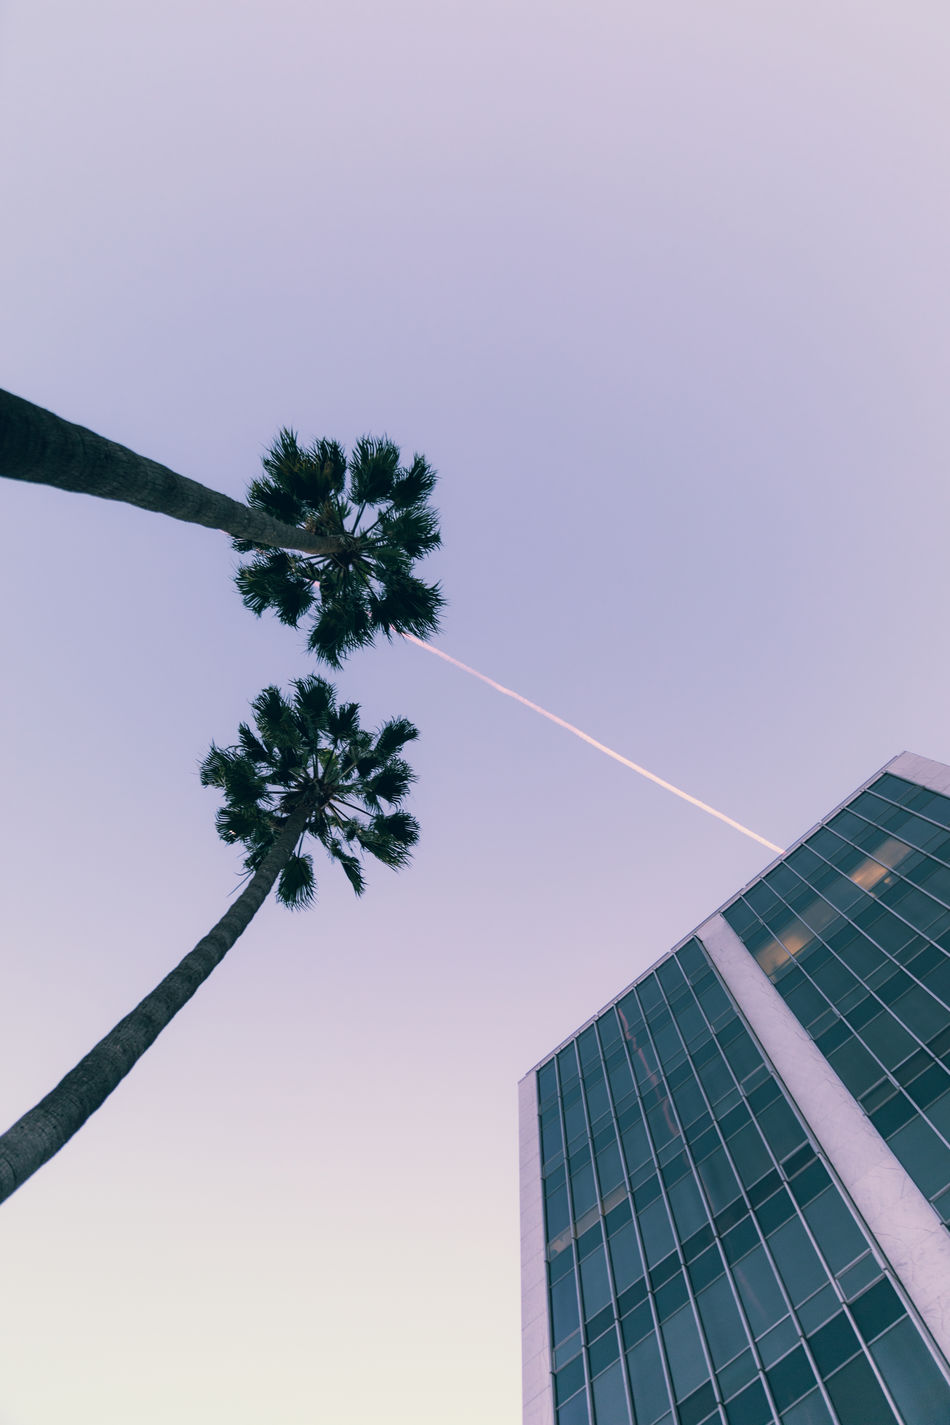 In Beverly Hills, California Architecture Built Structure Clear Sky Enjoying Life Eye4photography  EyeEm Best Shots Hanging Out Hello World Lines Low Angle View No People Outdoors Palm Tree Photography Sky Tall Tree Vapor Trail